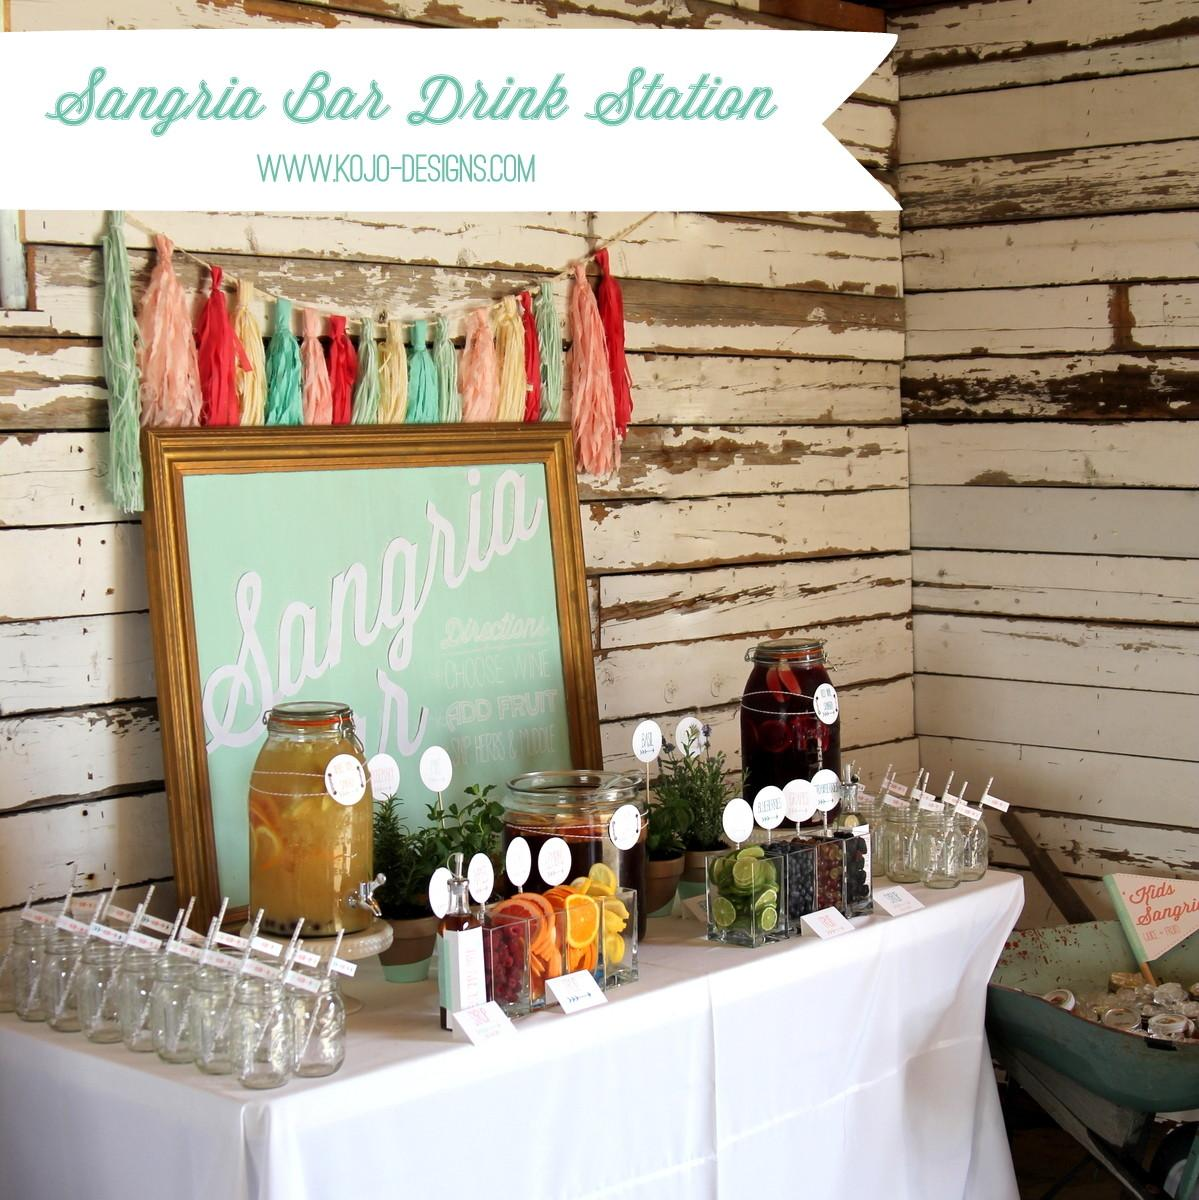 Ultimate Sangria Bar Summer Best Drink Station